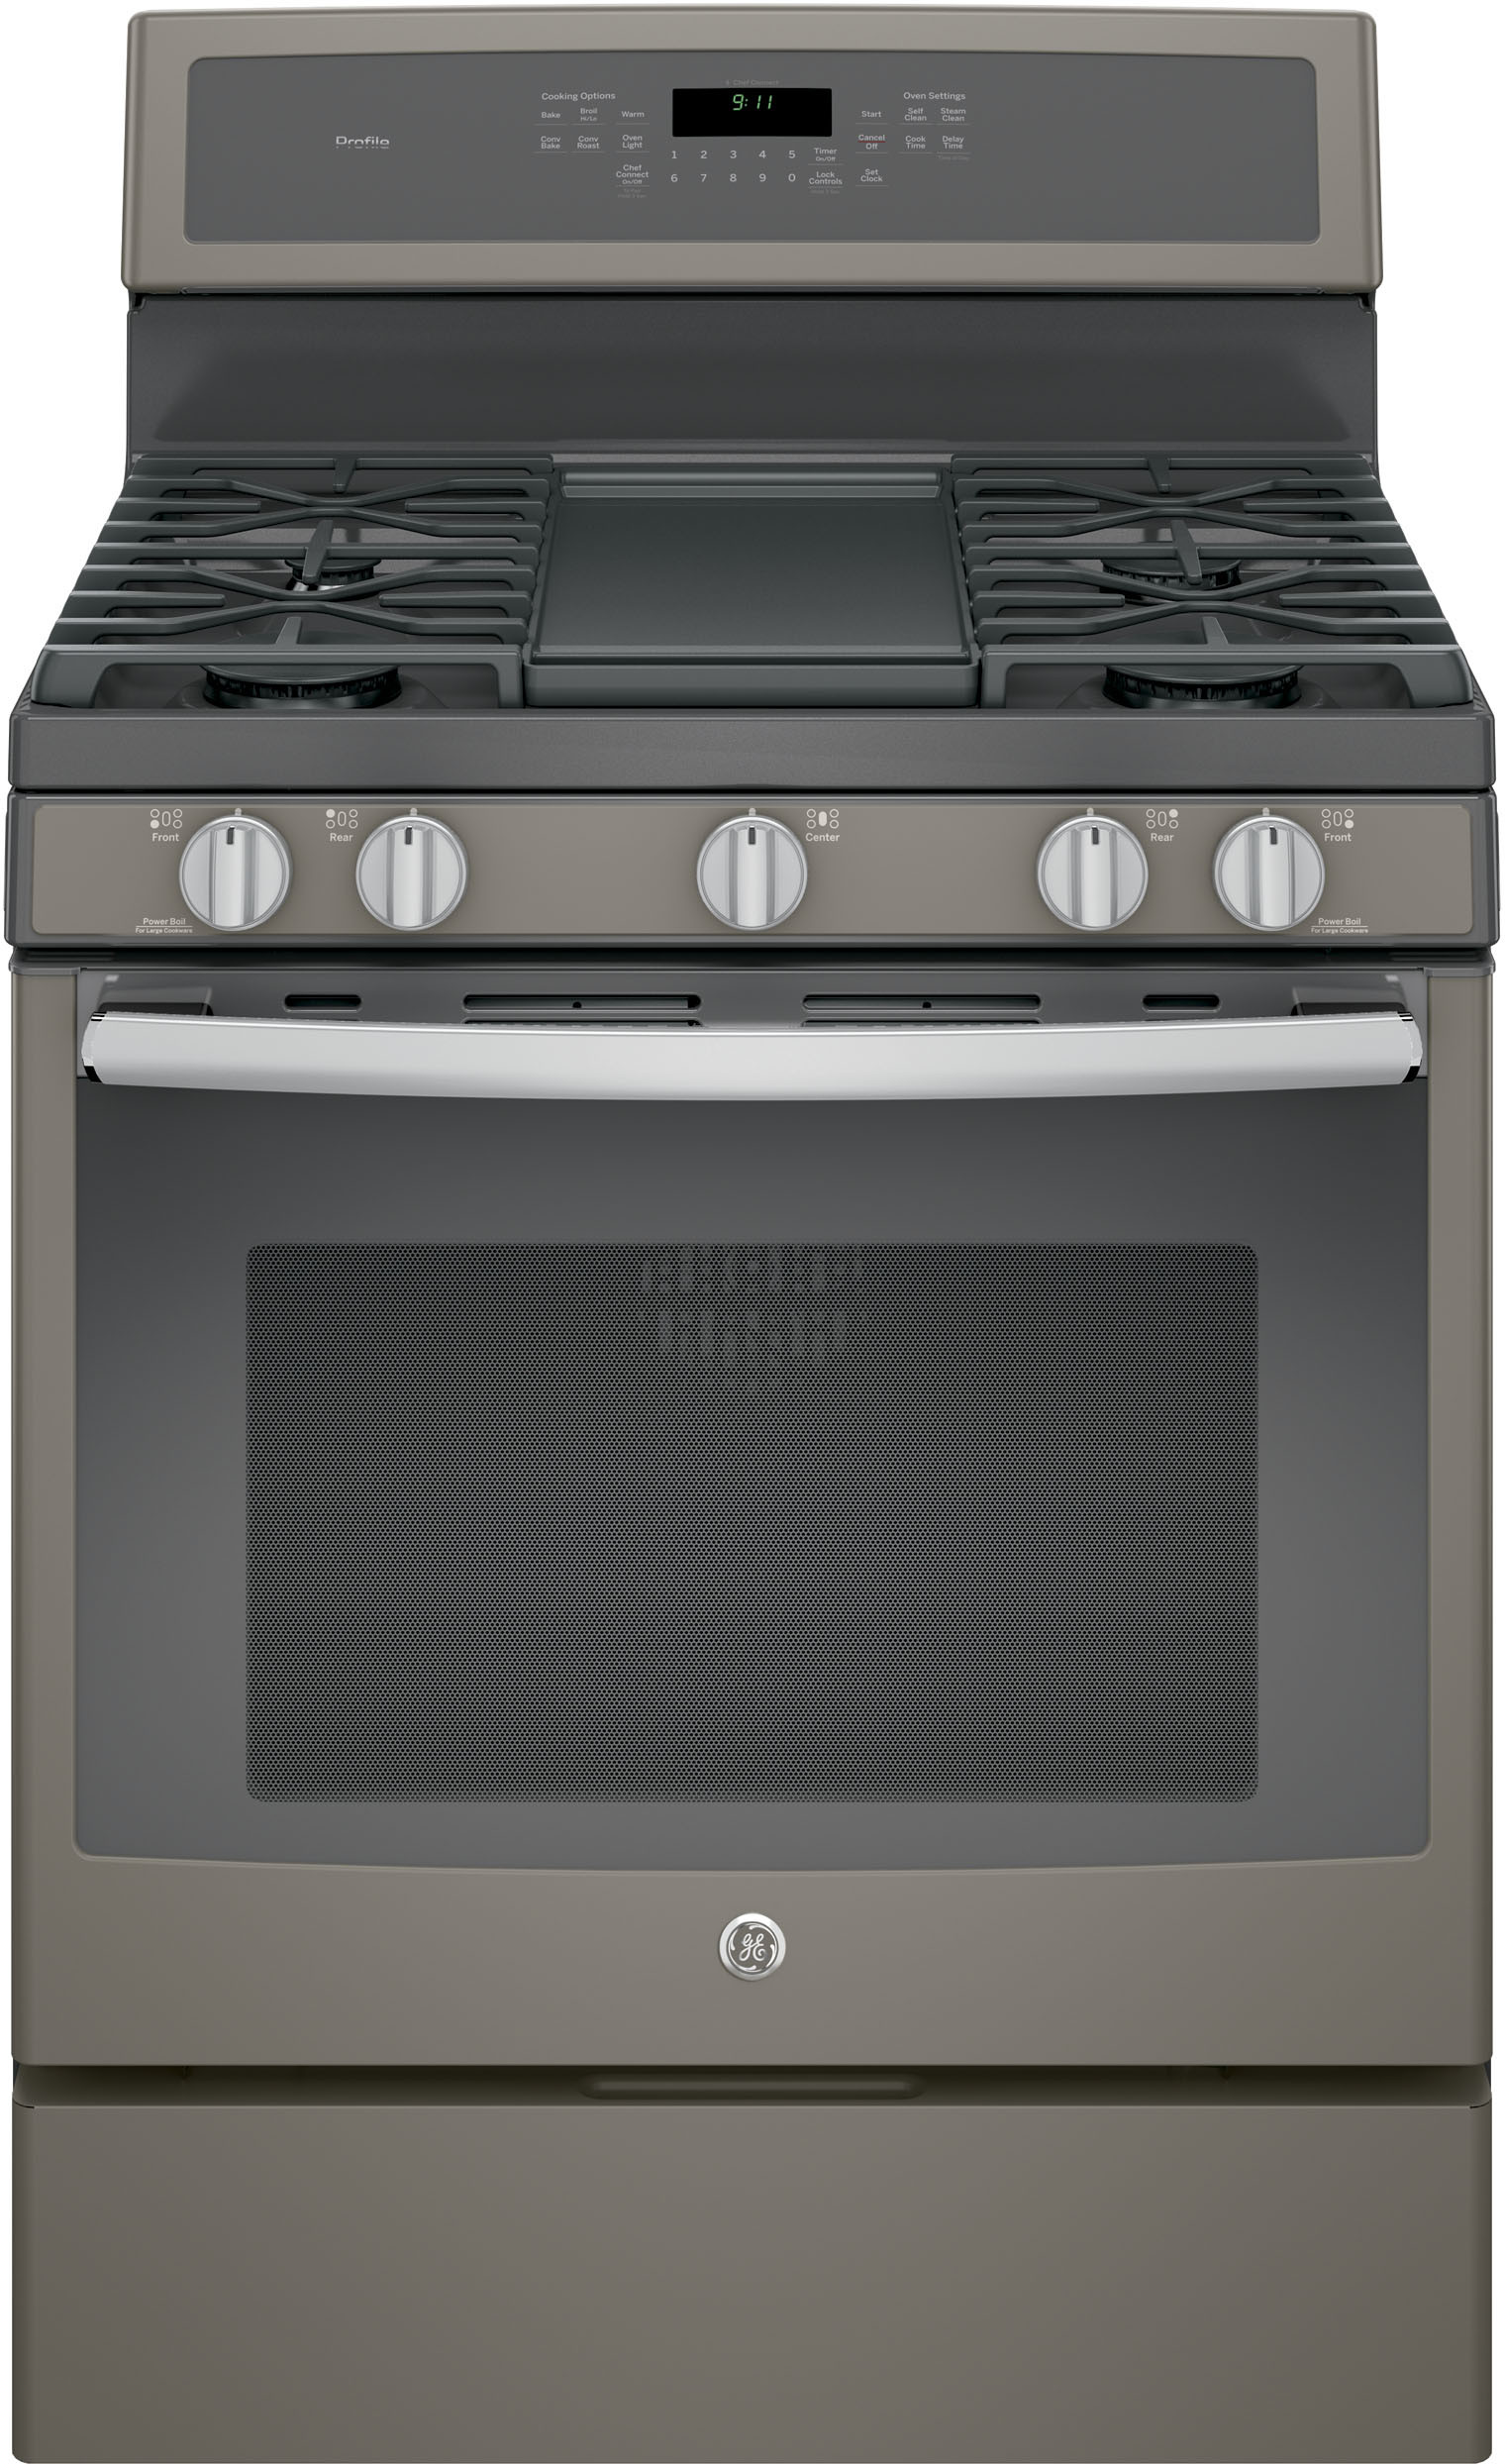 Ge Pgb911eejes 30 Inch Freestanding Gas Range With Chef Connect Convection Steam Self Clean Boil Burners Reversible Grill Griddle 5 6 Cu Ft